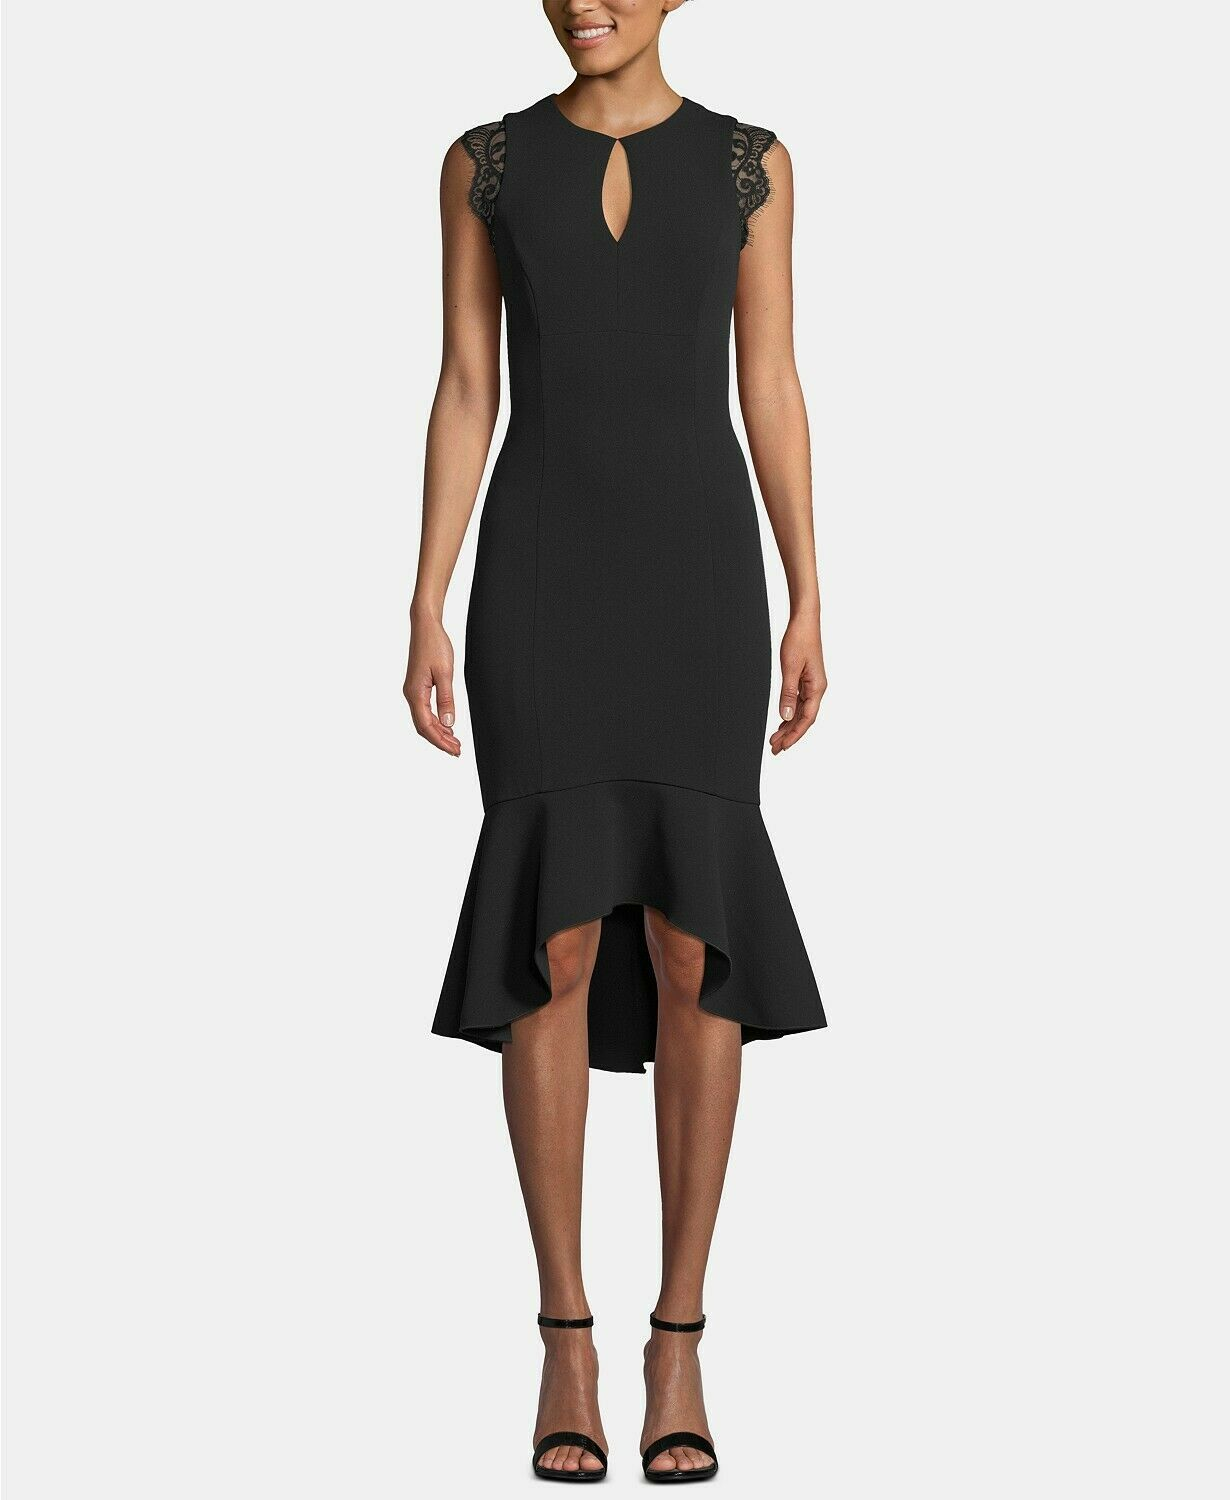 Betsy & Adam Keyhole Lace-Flounce Midi Dress Black Size 6 $249